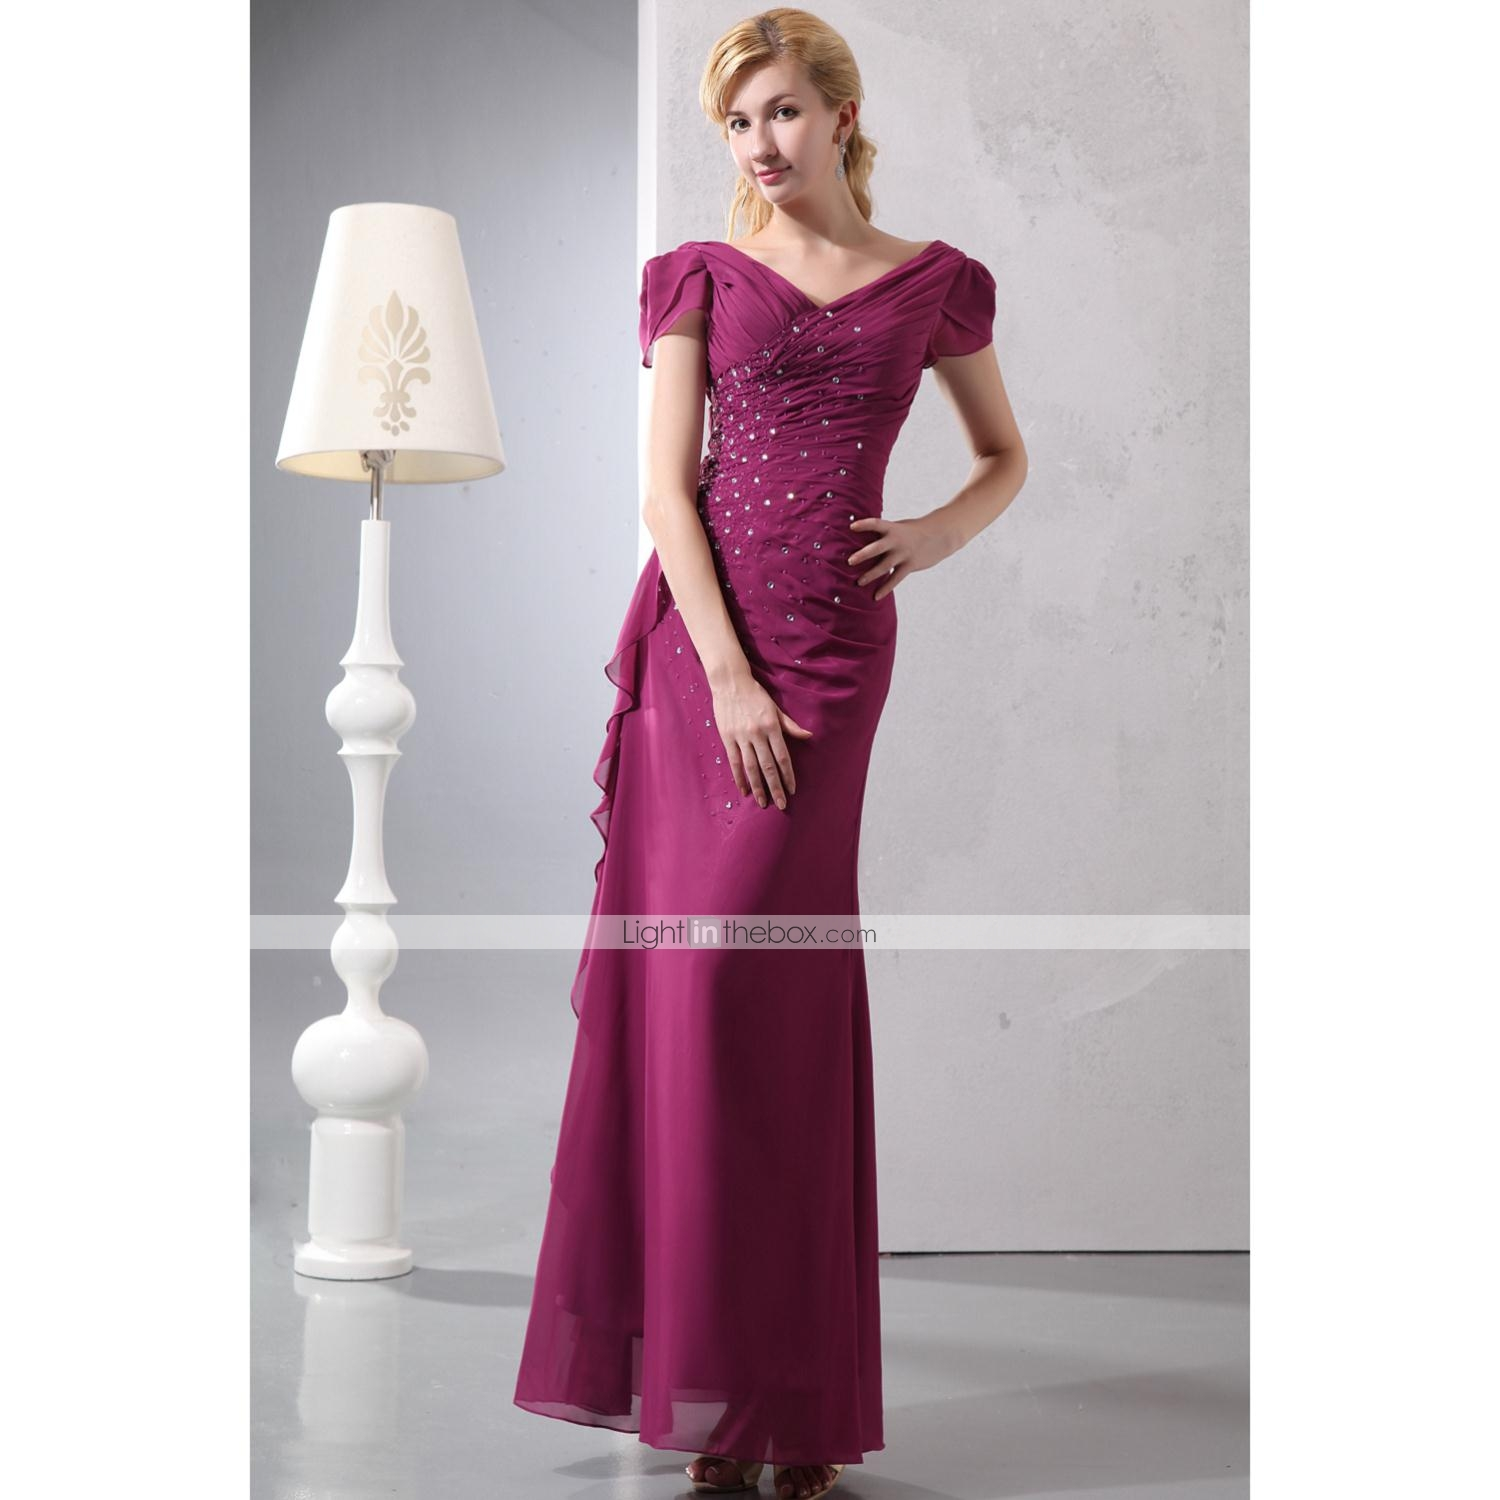 5423b965a9f Sheath   Column V Neck Floor Length Chiffon Mother of the Bride ...